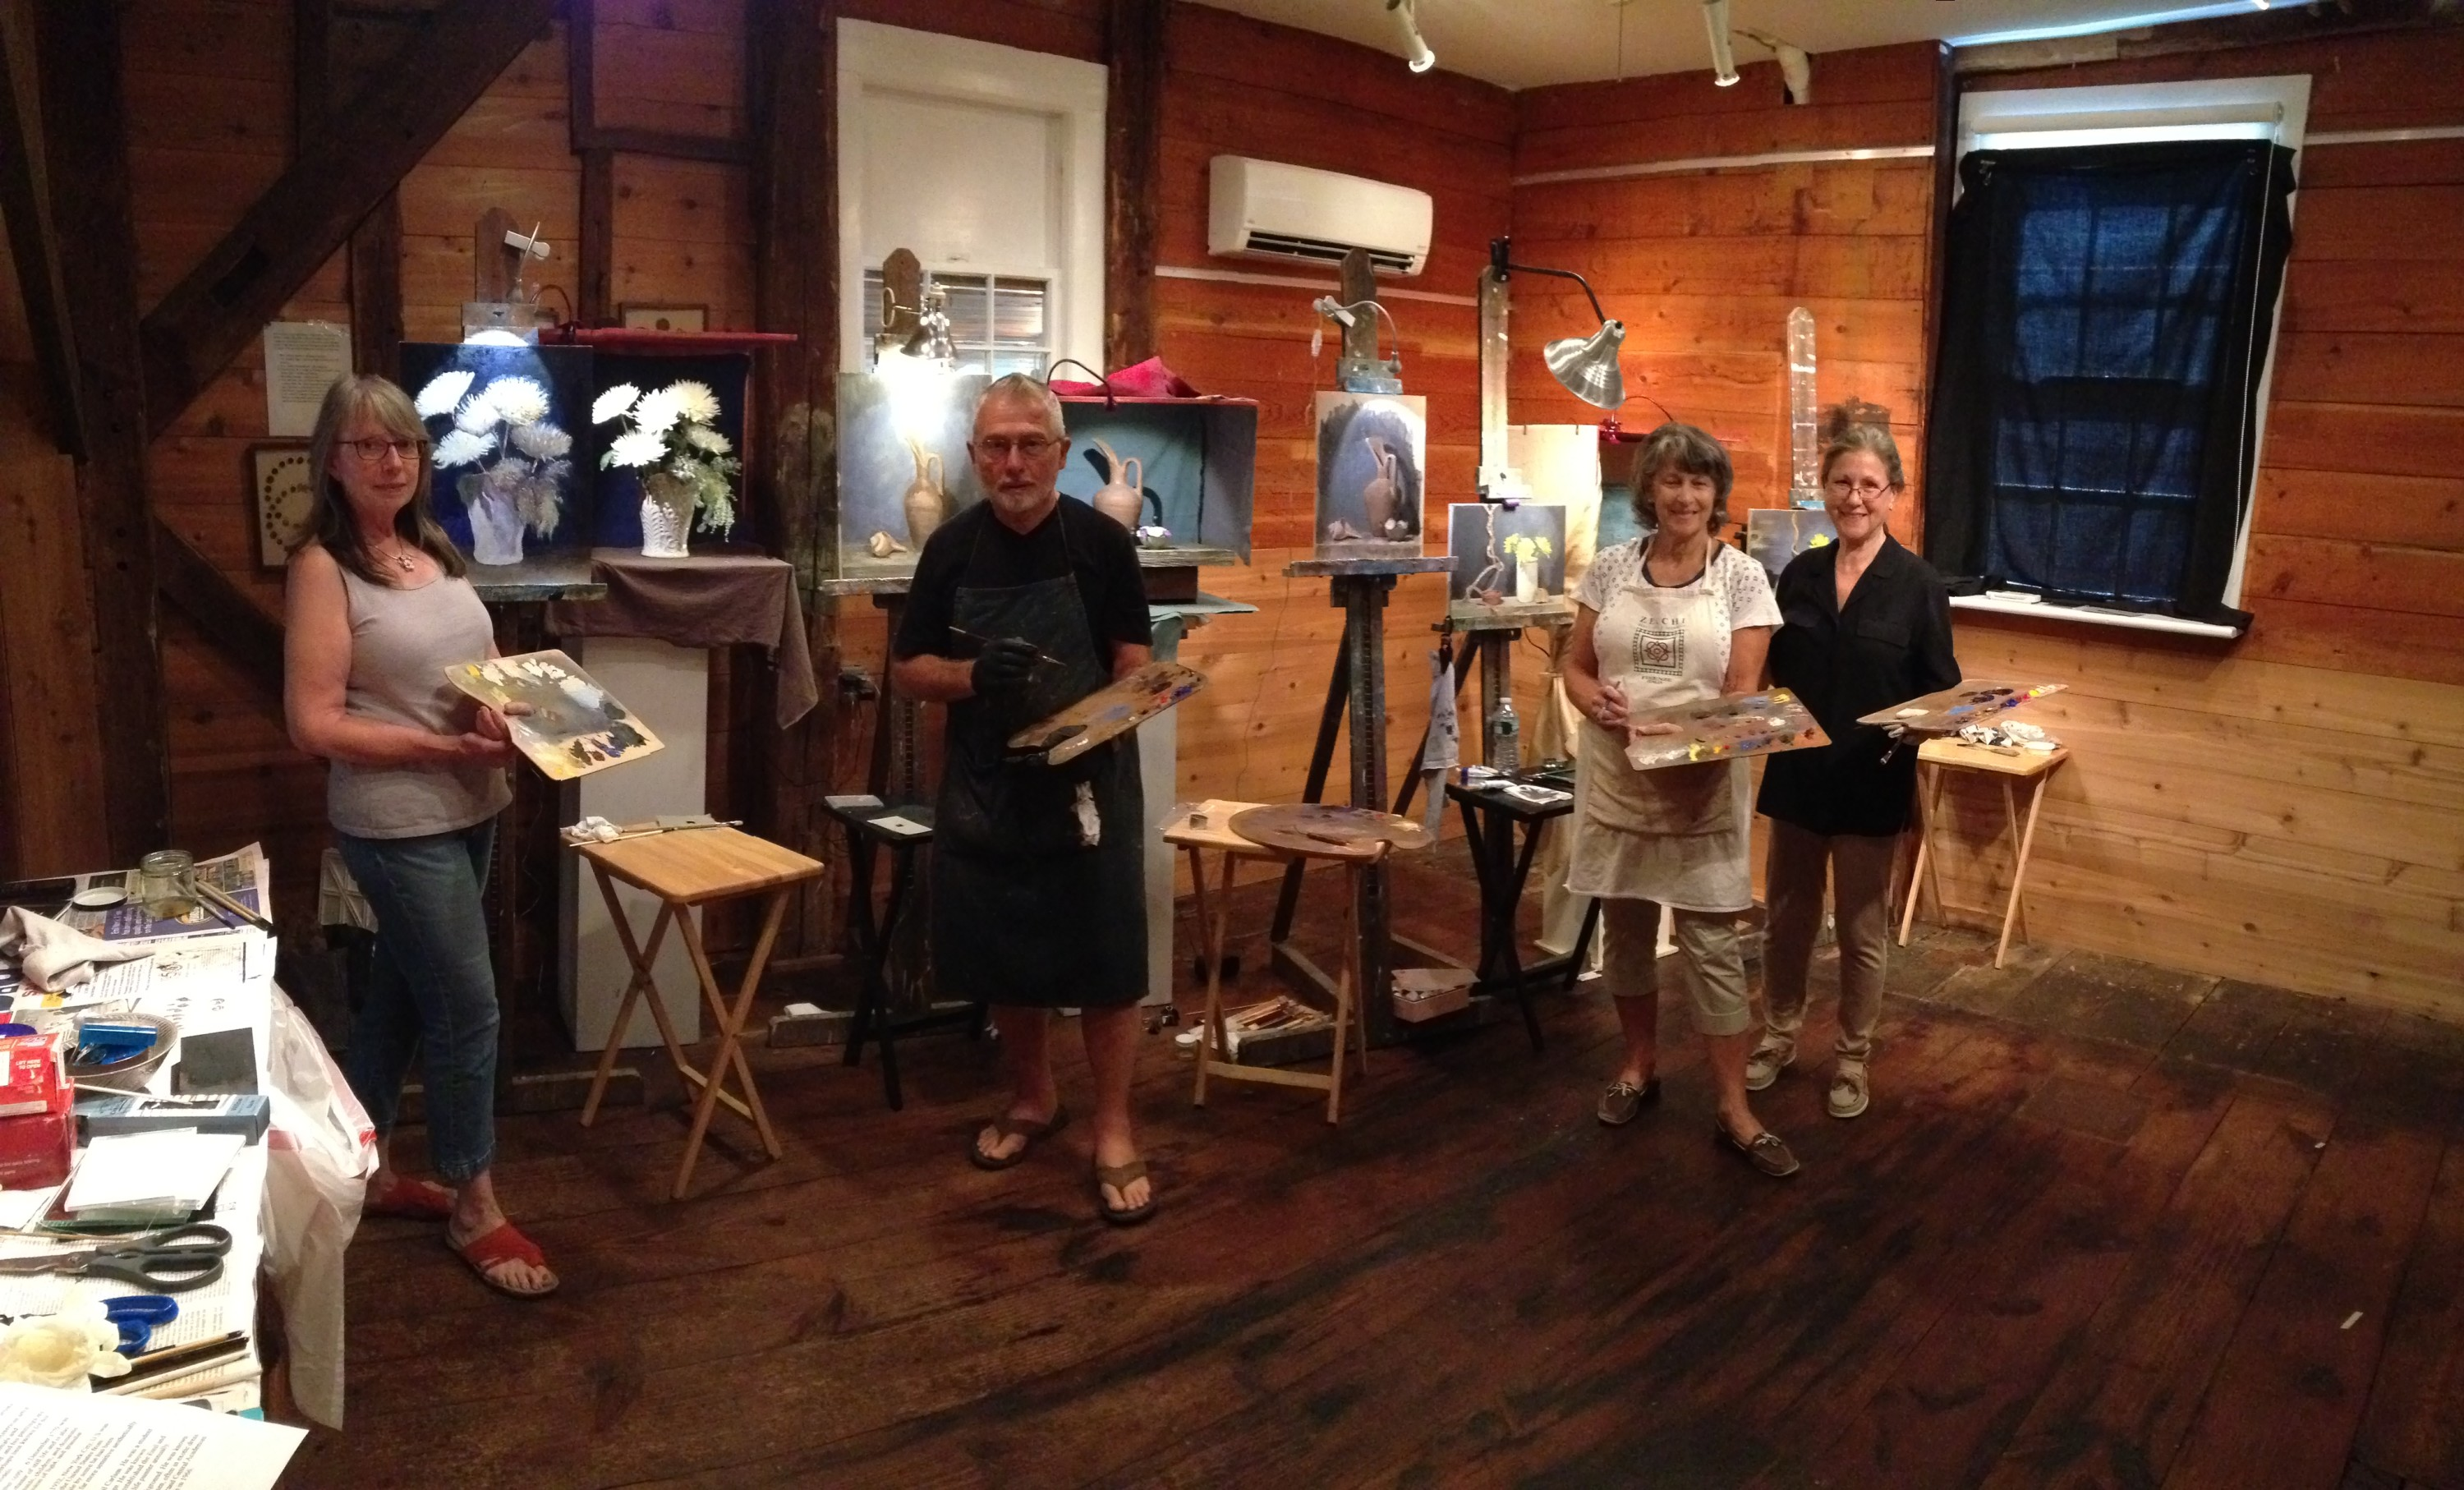 painters at Cornelia's art course- 4 days, from 10 am to 4pm- an intense and productive time!